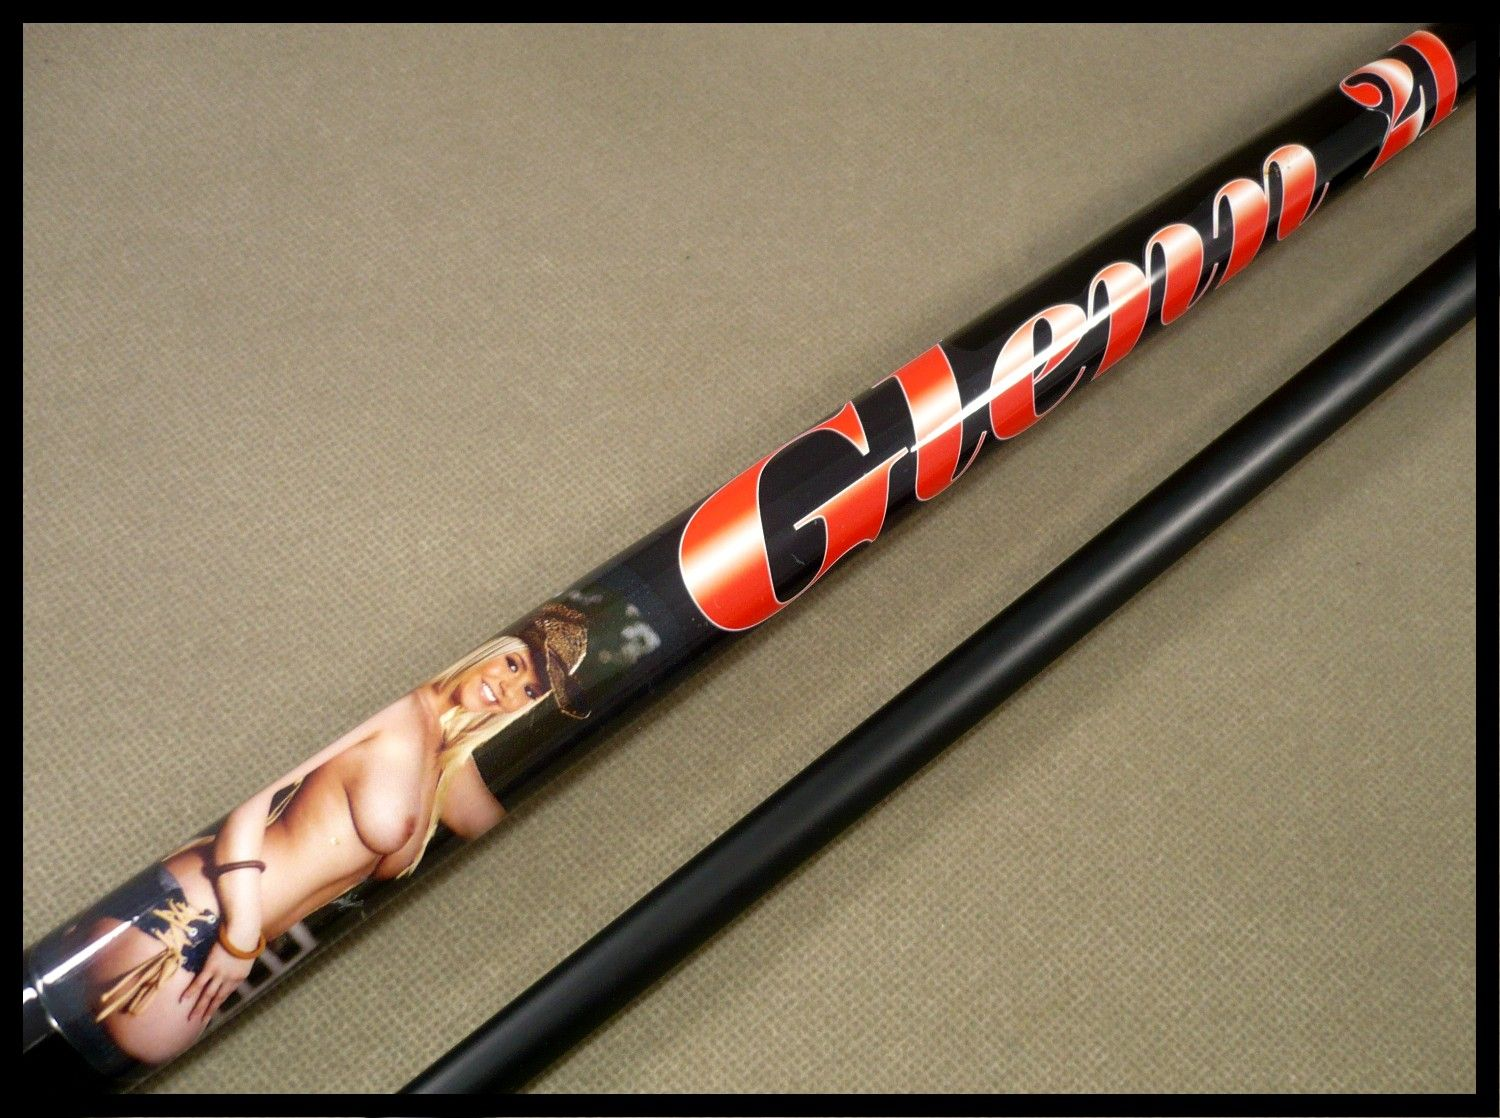 A Custom Pool Cue design for the boys  Almost anything goes  | Pool